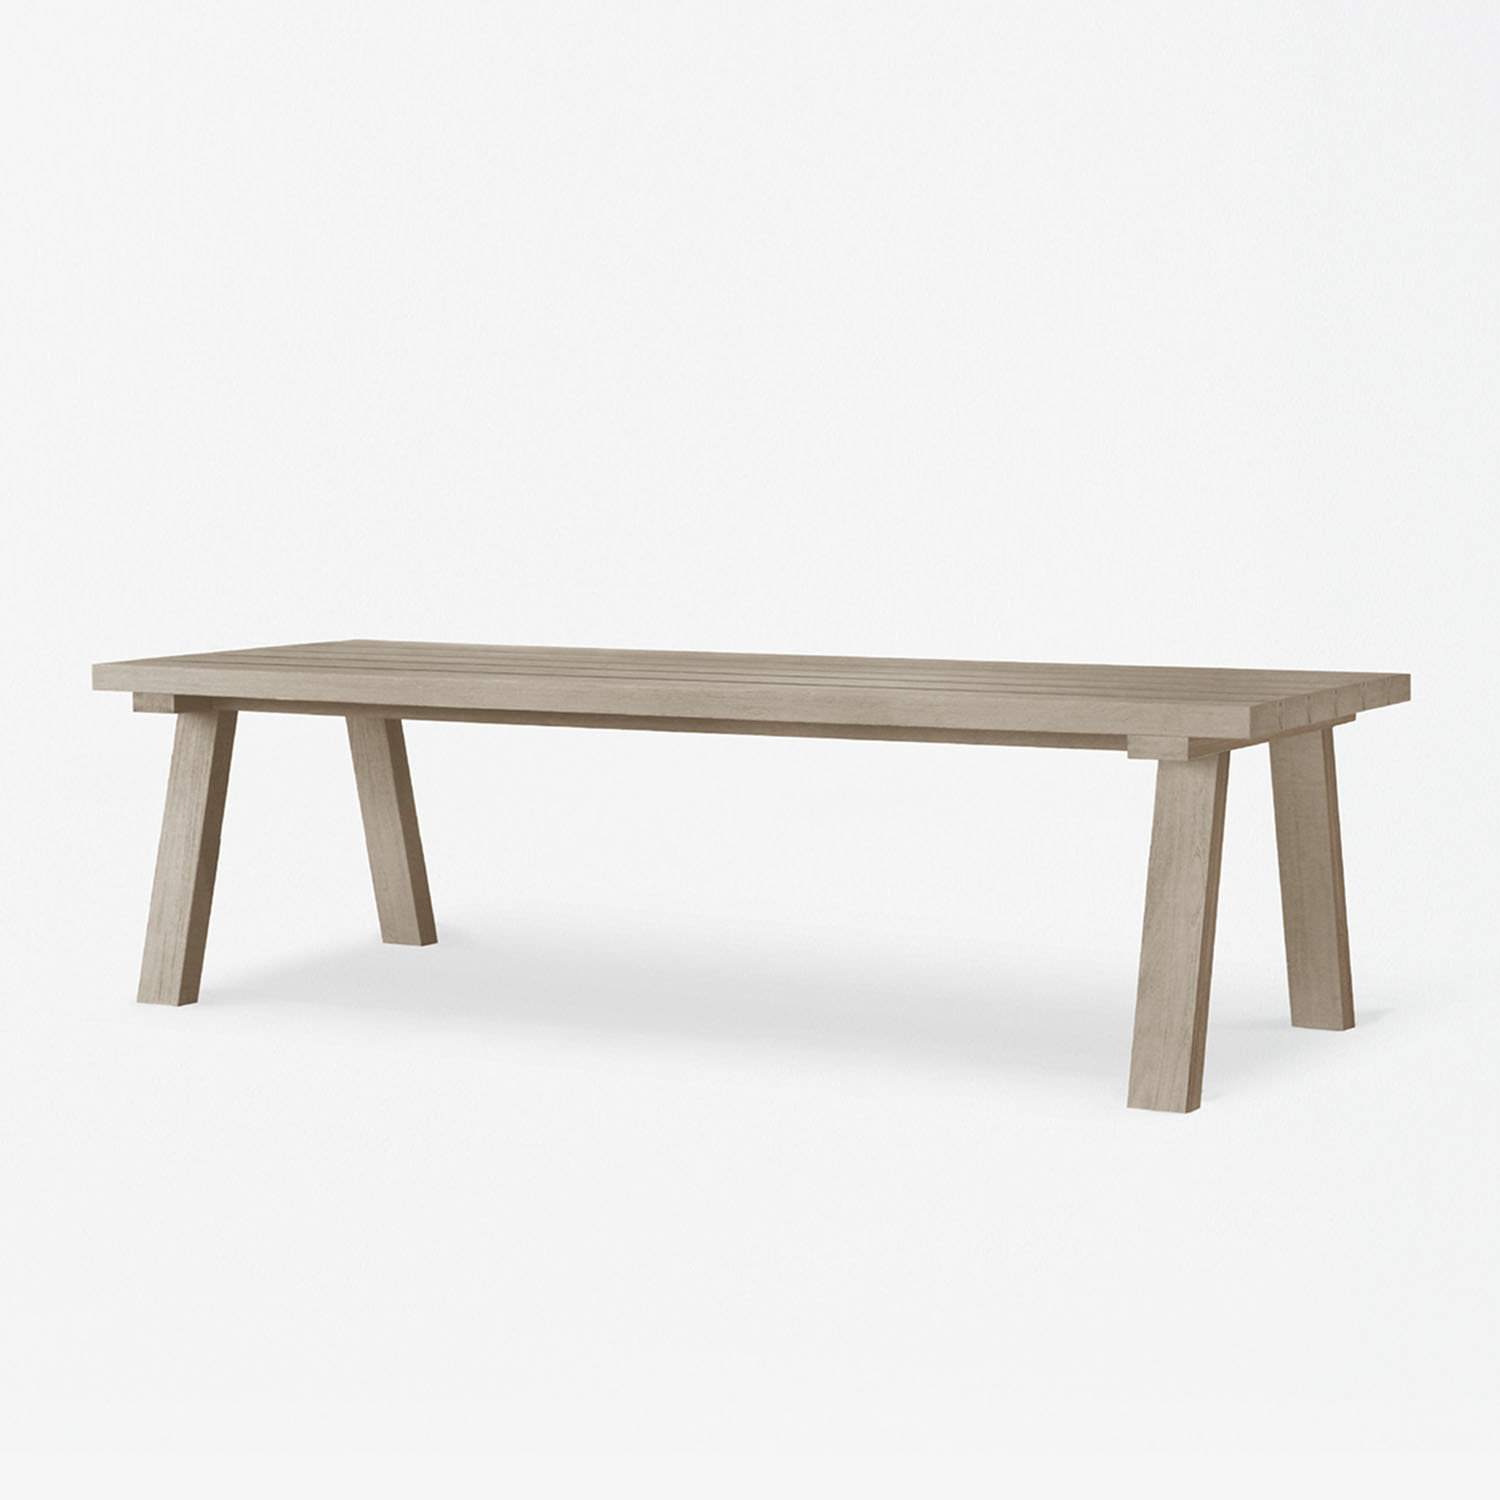 Malibu Rectangular Dining Table